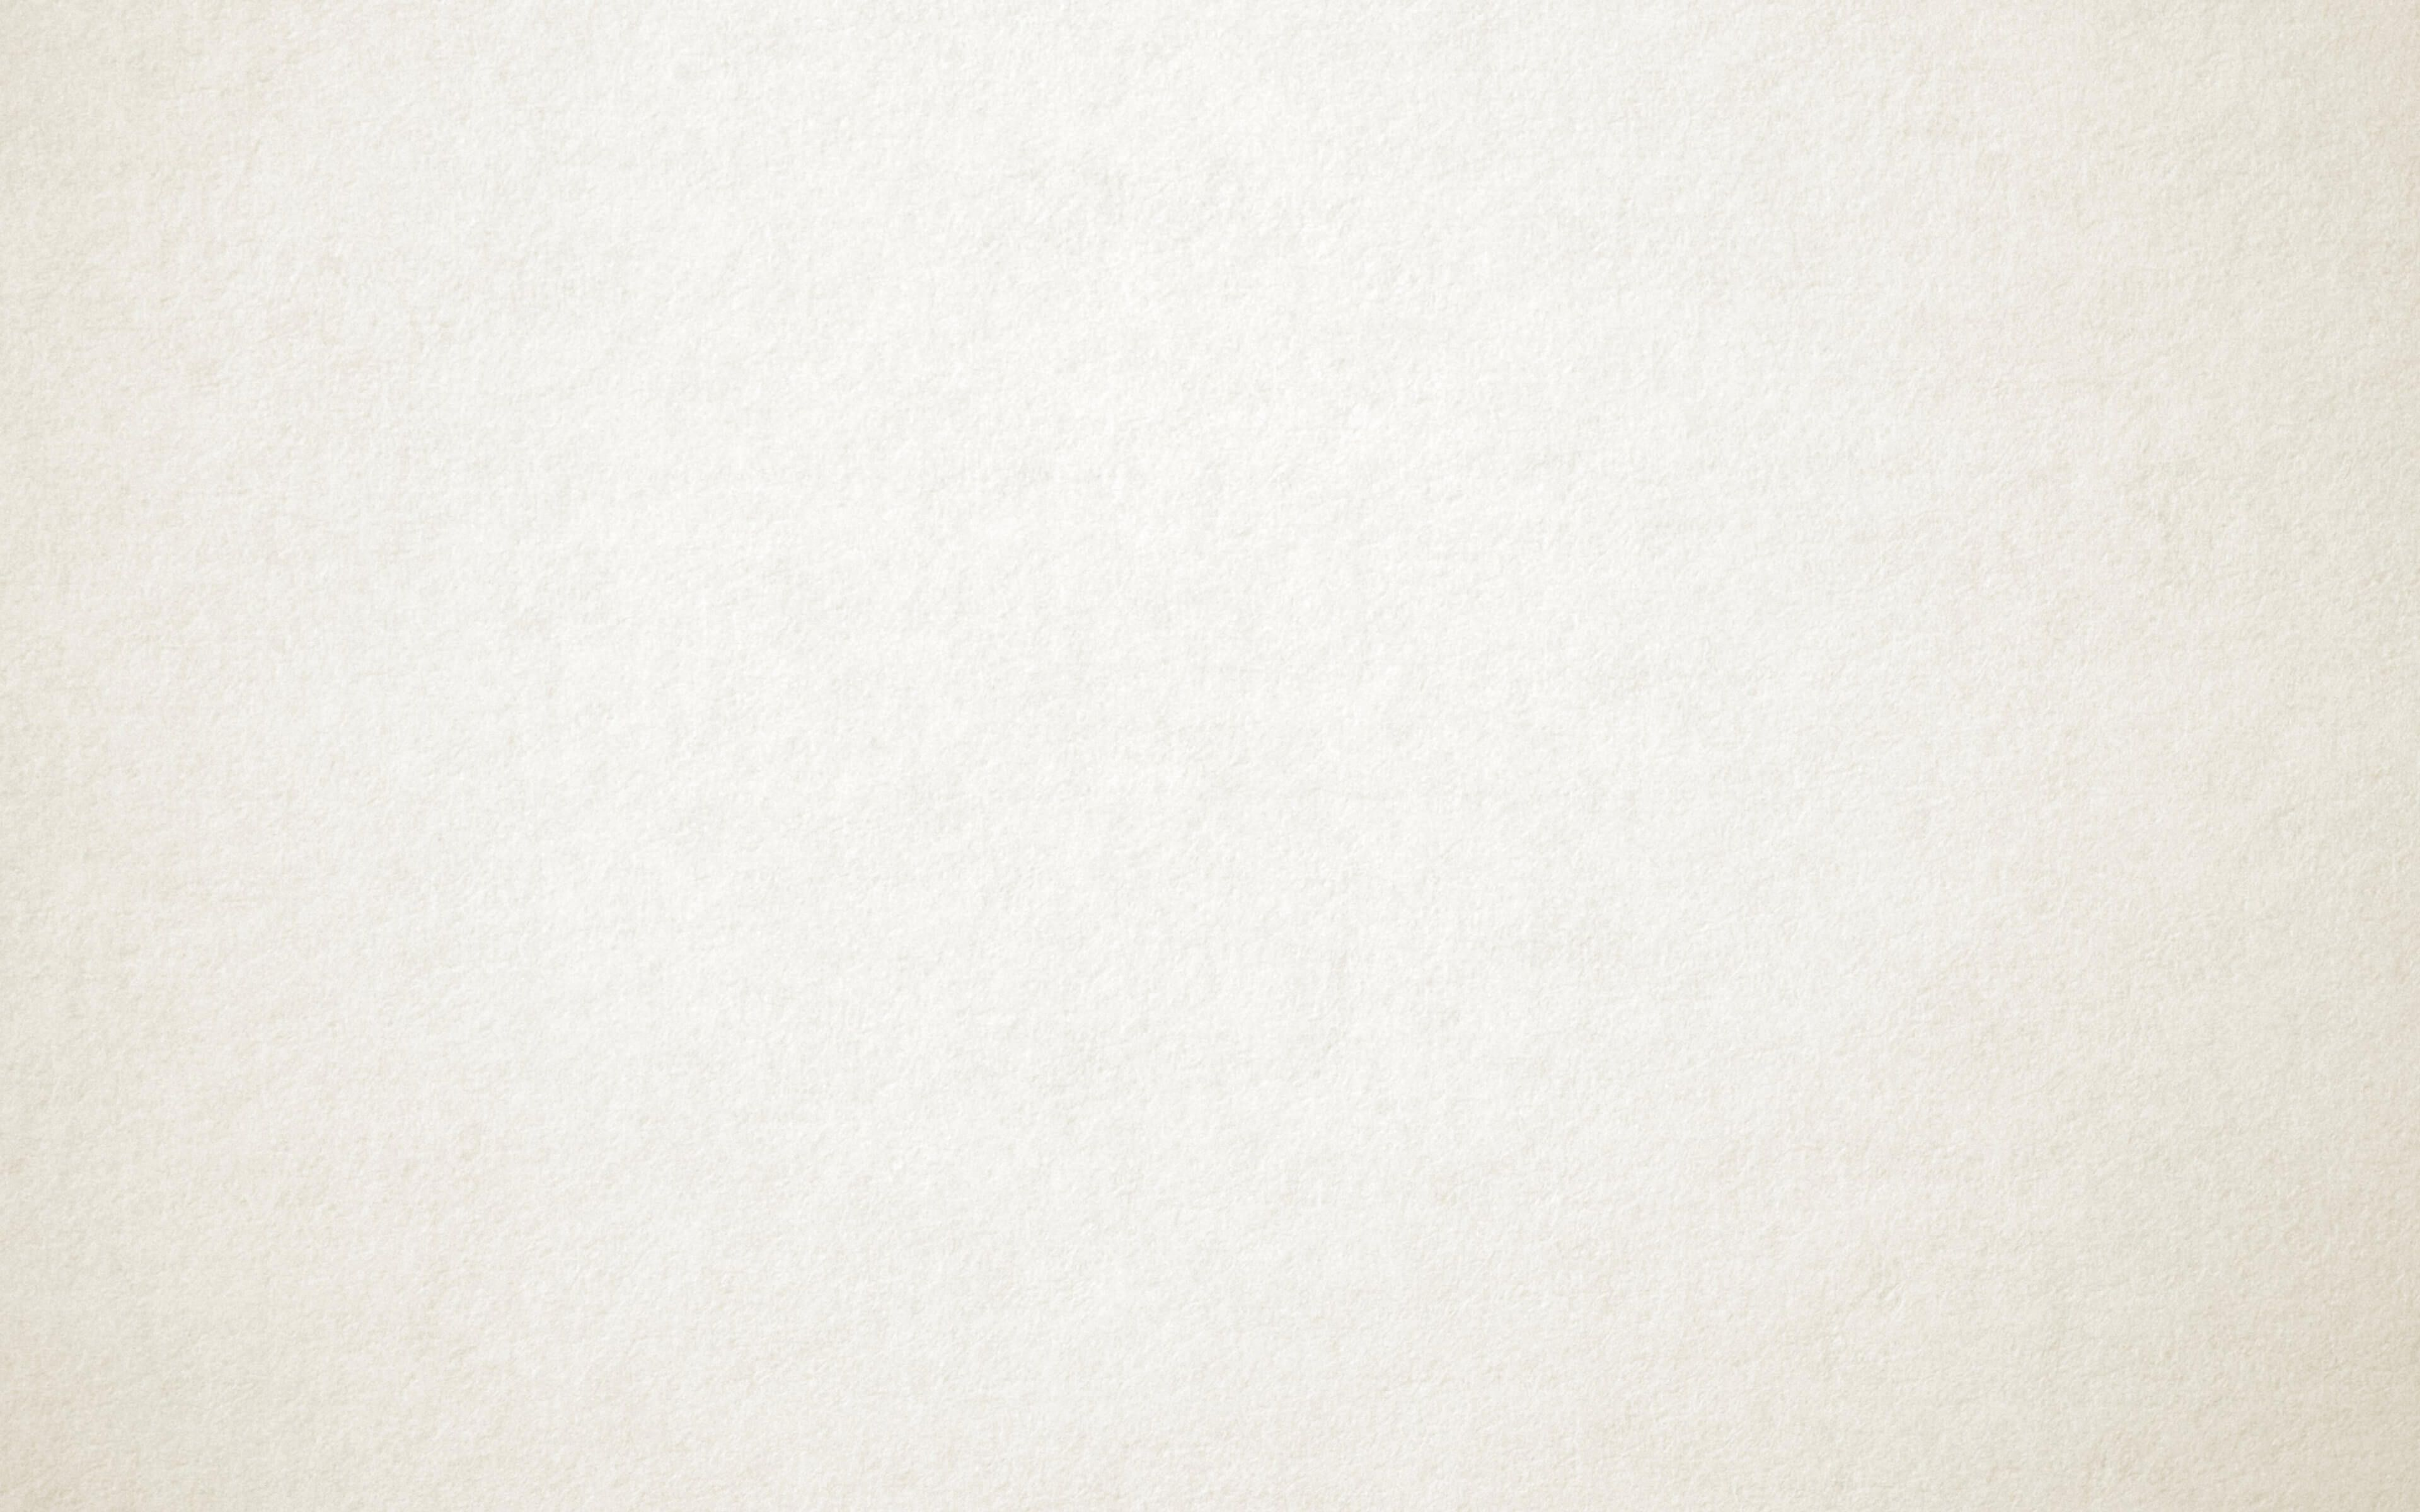 White Paint Texture Ivory Paper 4k Wallpaper 38402400